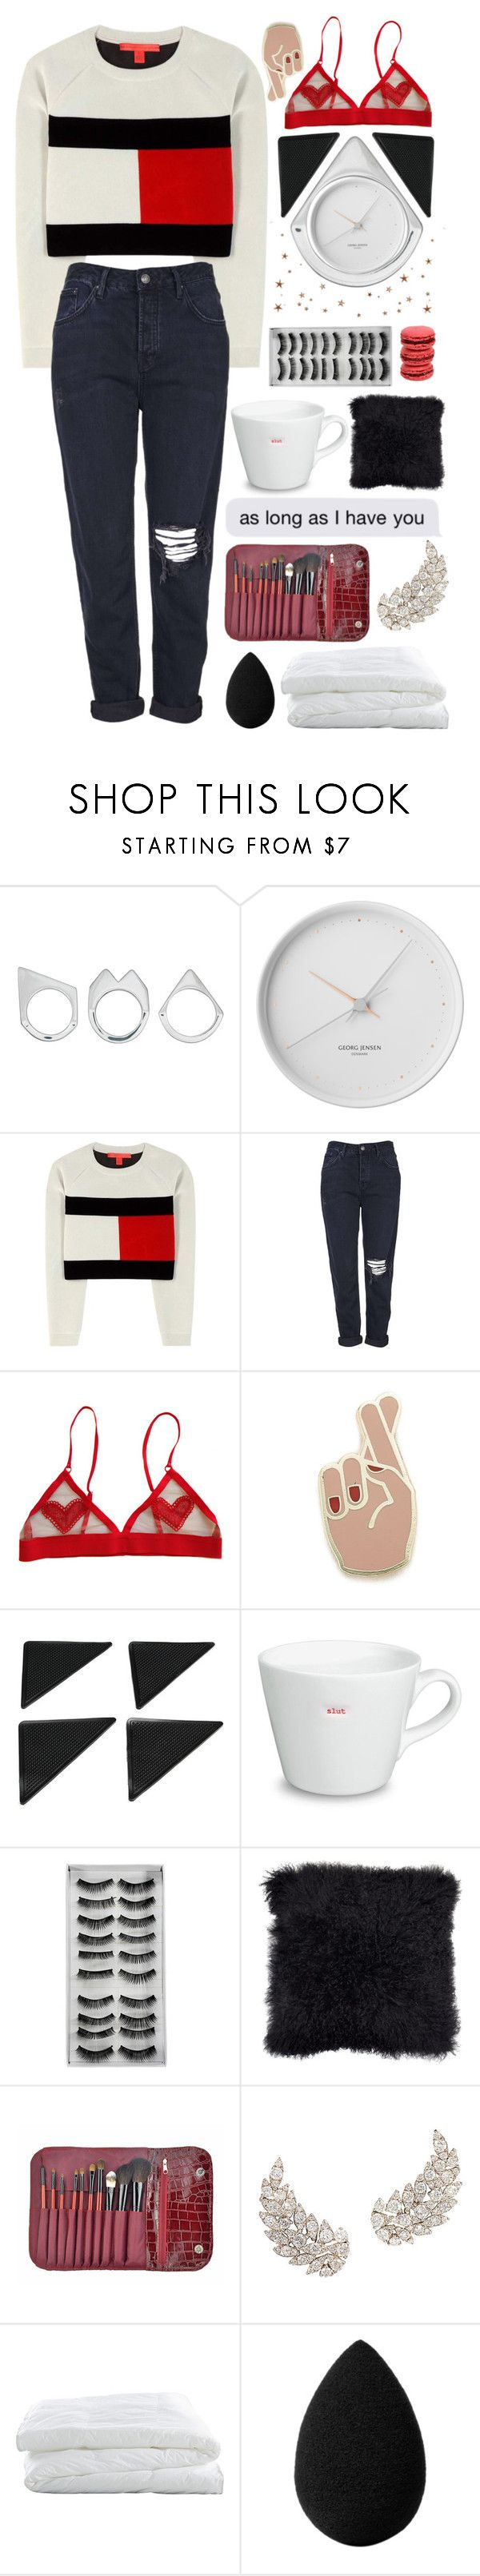 """""""as long as i have you"""" by taraturk ❤ liked on Polyvore featuring Moratorium, Georg Jensen, Tommy Hilfiger, Topshop, Georgia Perry, Ladurée, Keith Brymer Jones, Crate and Barrel, beautyblender and tommyhilfinger"""